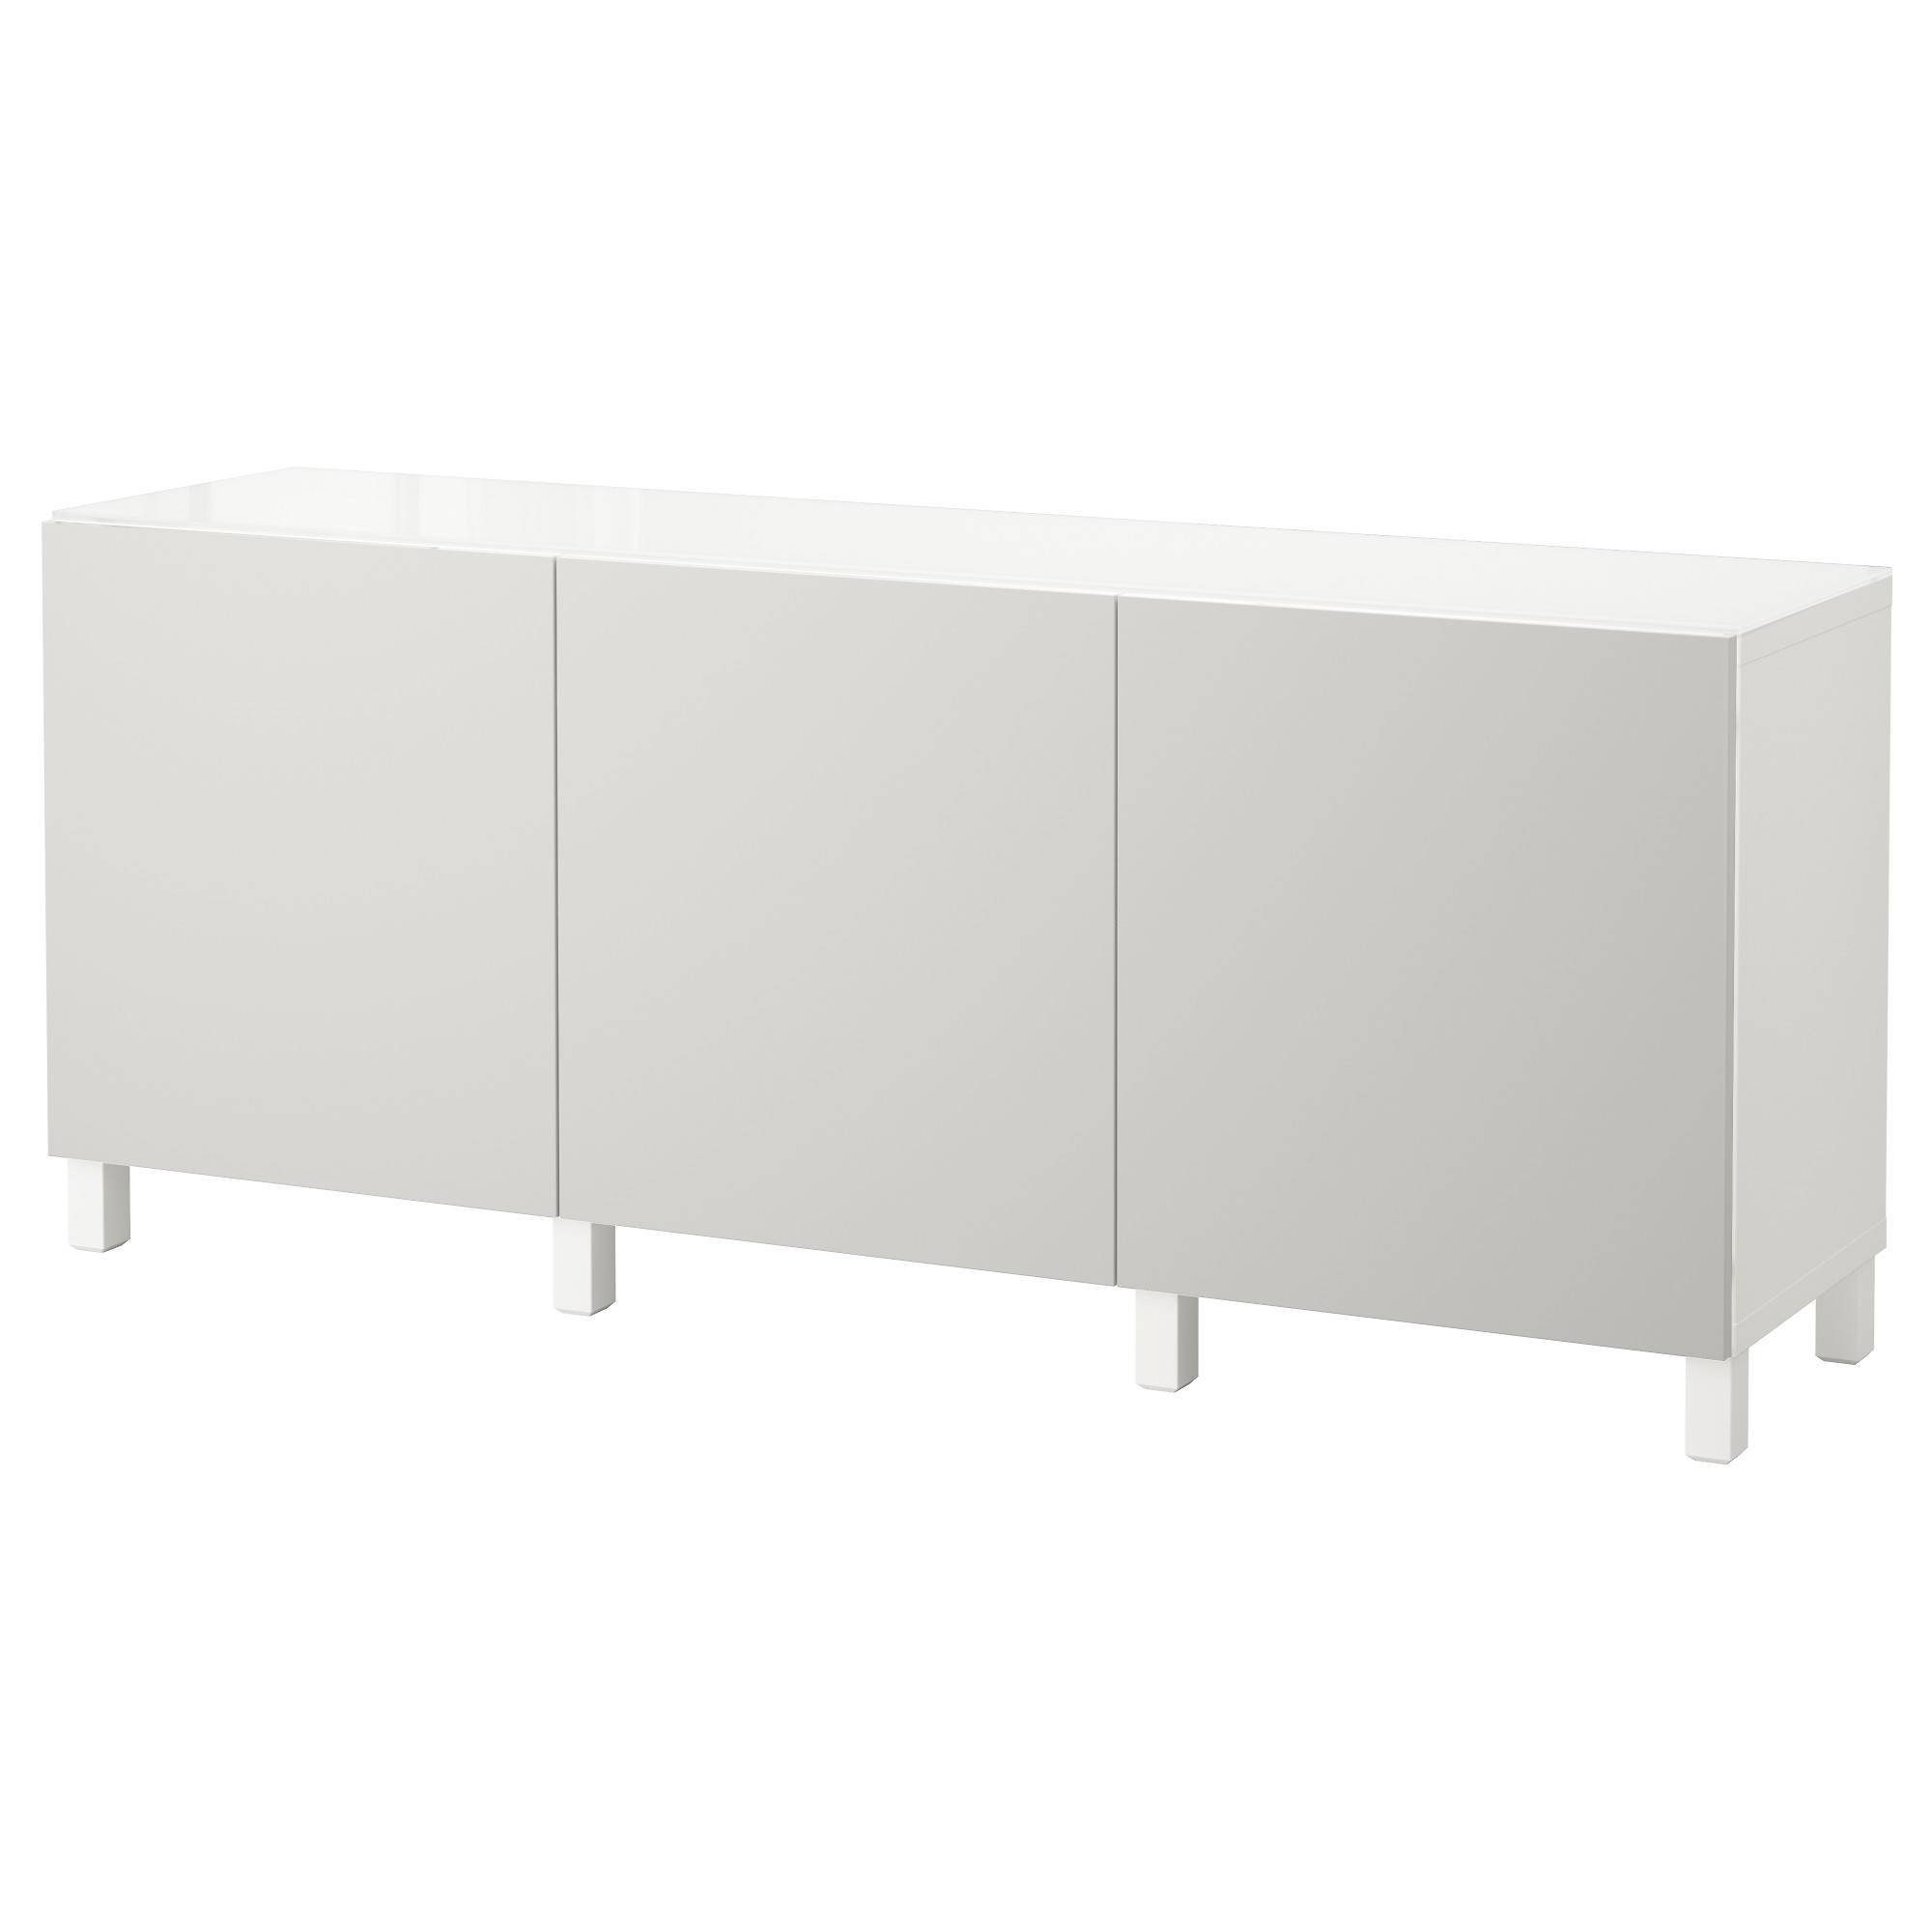 Occasional Tables & Hall Table | Ikea Within Narrow White Sideboards (#10 of 15)